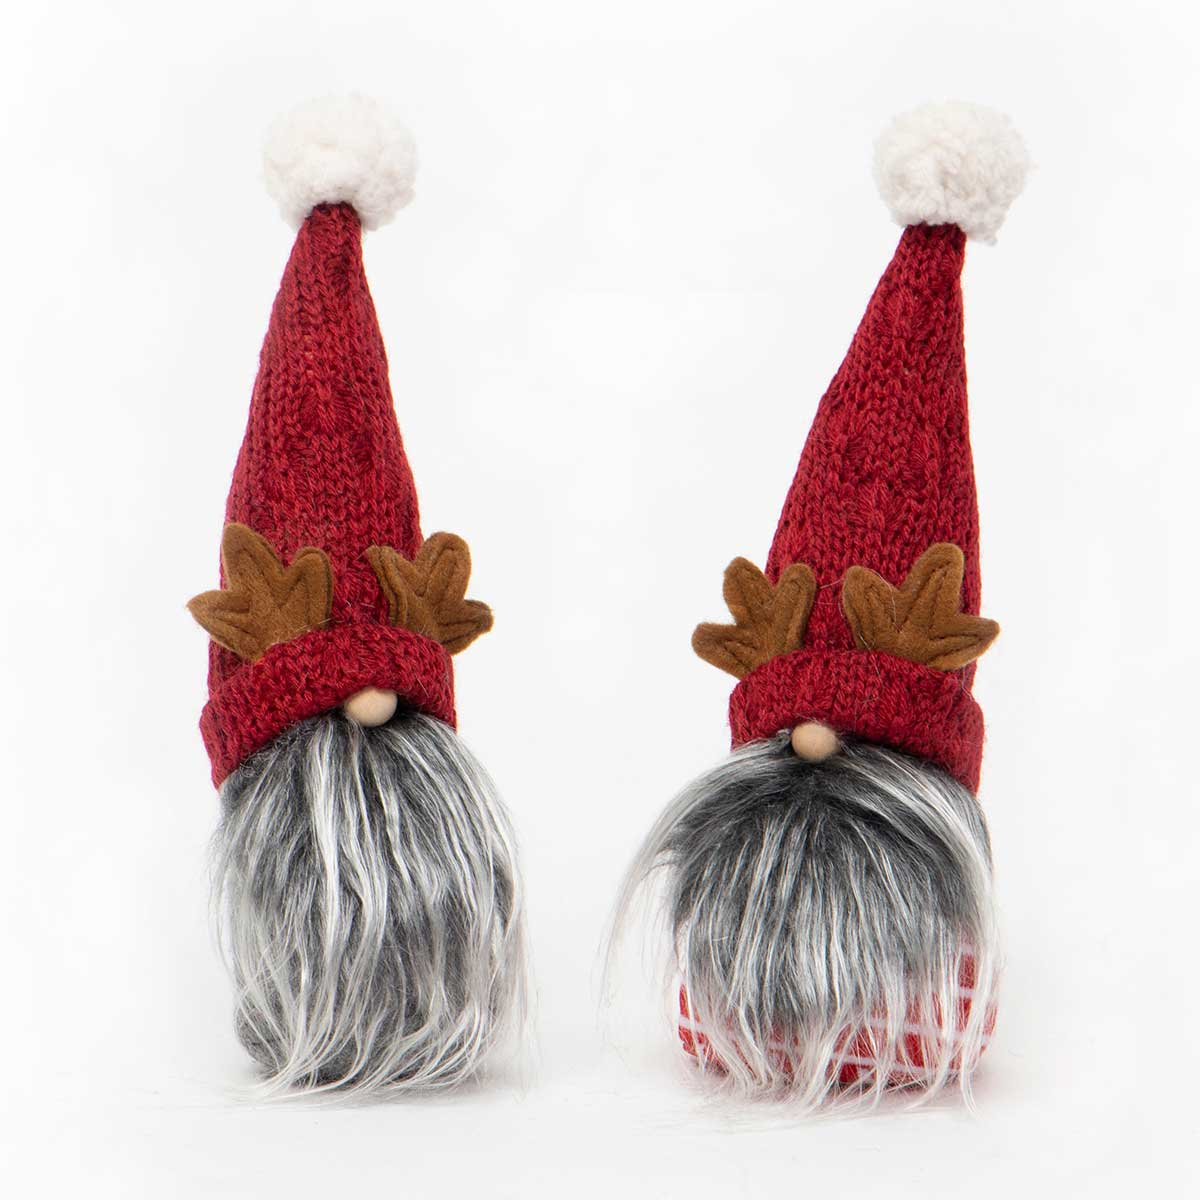 MINI GNOME WITH ANTLERS, SWEATER HAT,